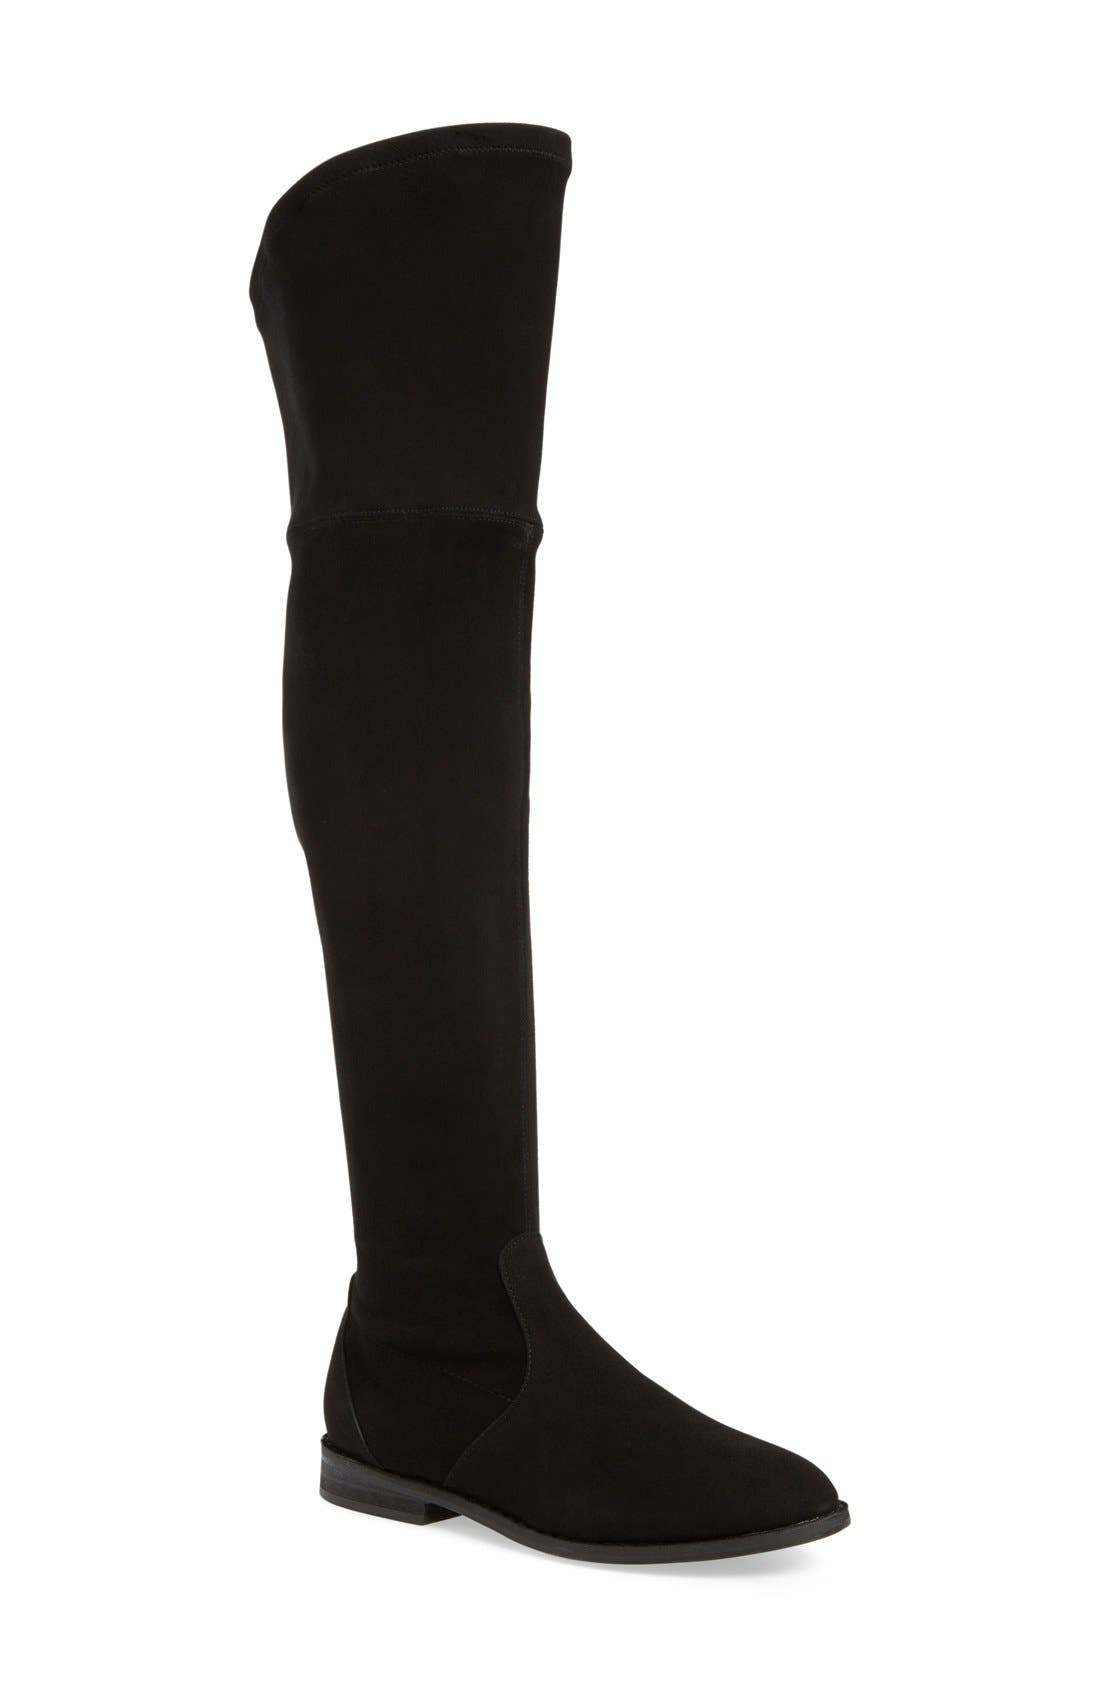 'Emma' Over the Knee Boot,                         Main,                         color, Black Suede